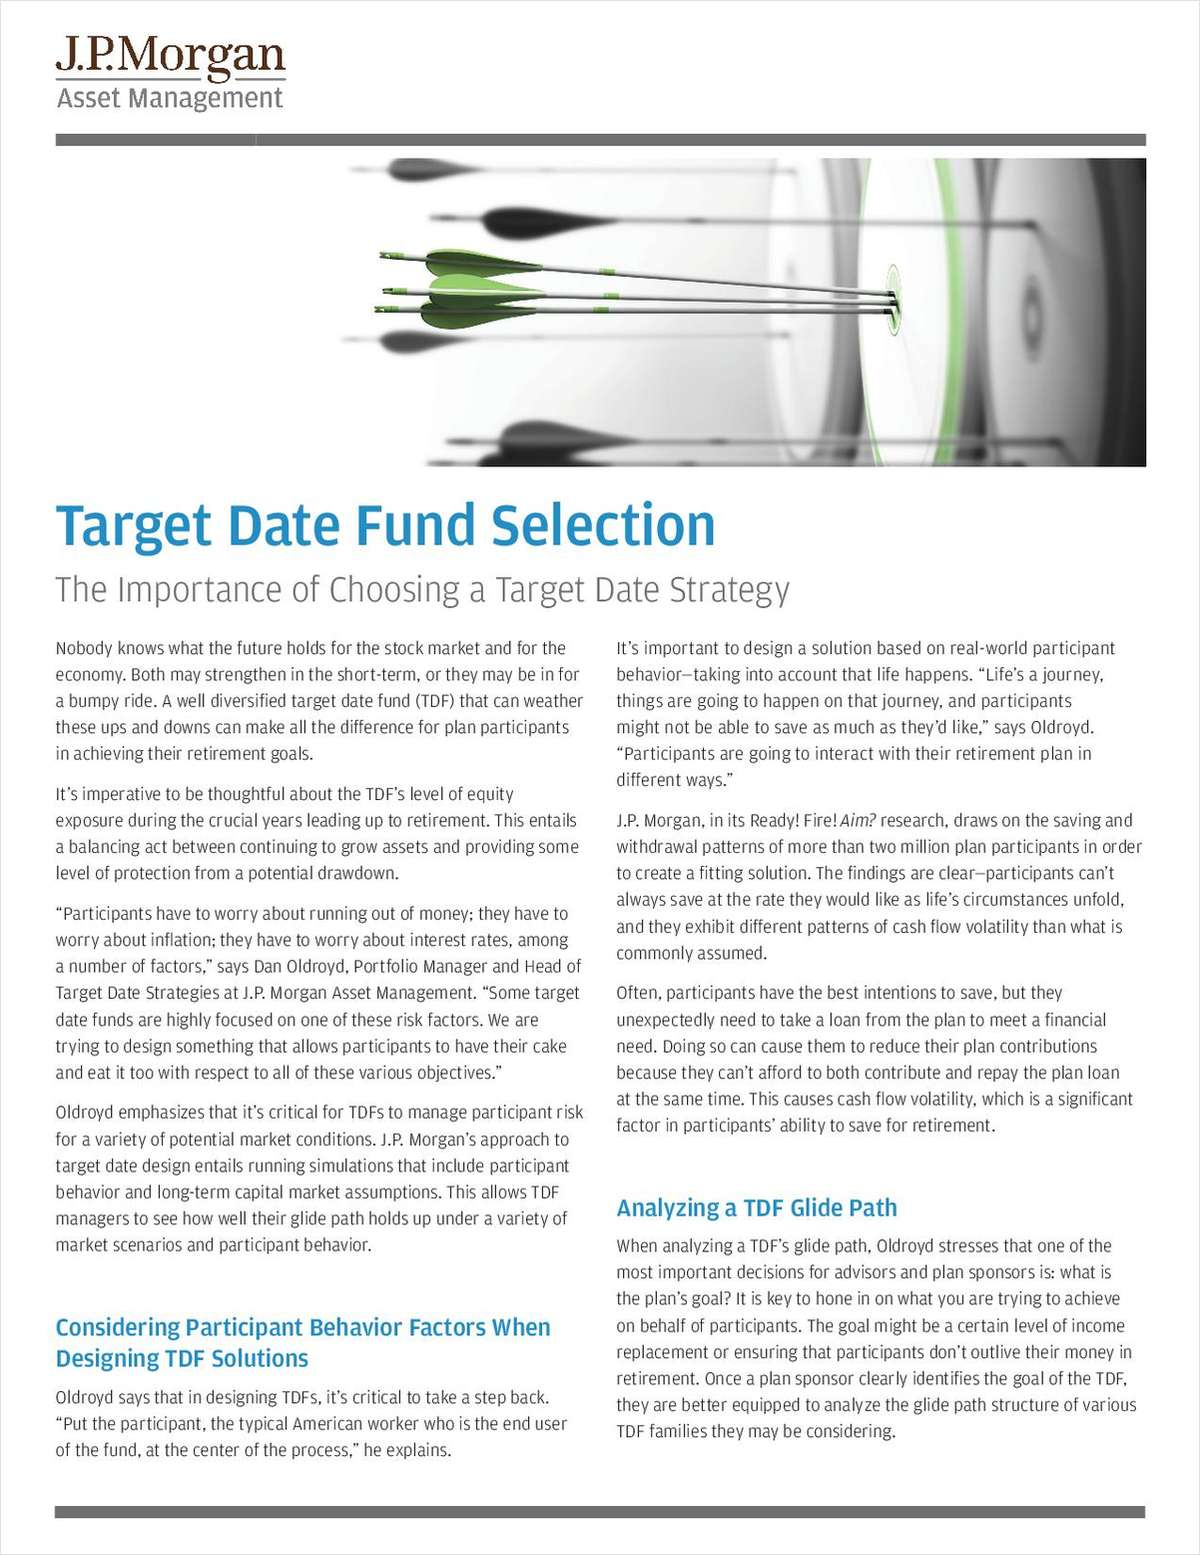 Target Date Fund Selection: The Importance of Choosing a Target Date Strategy